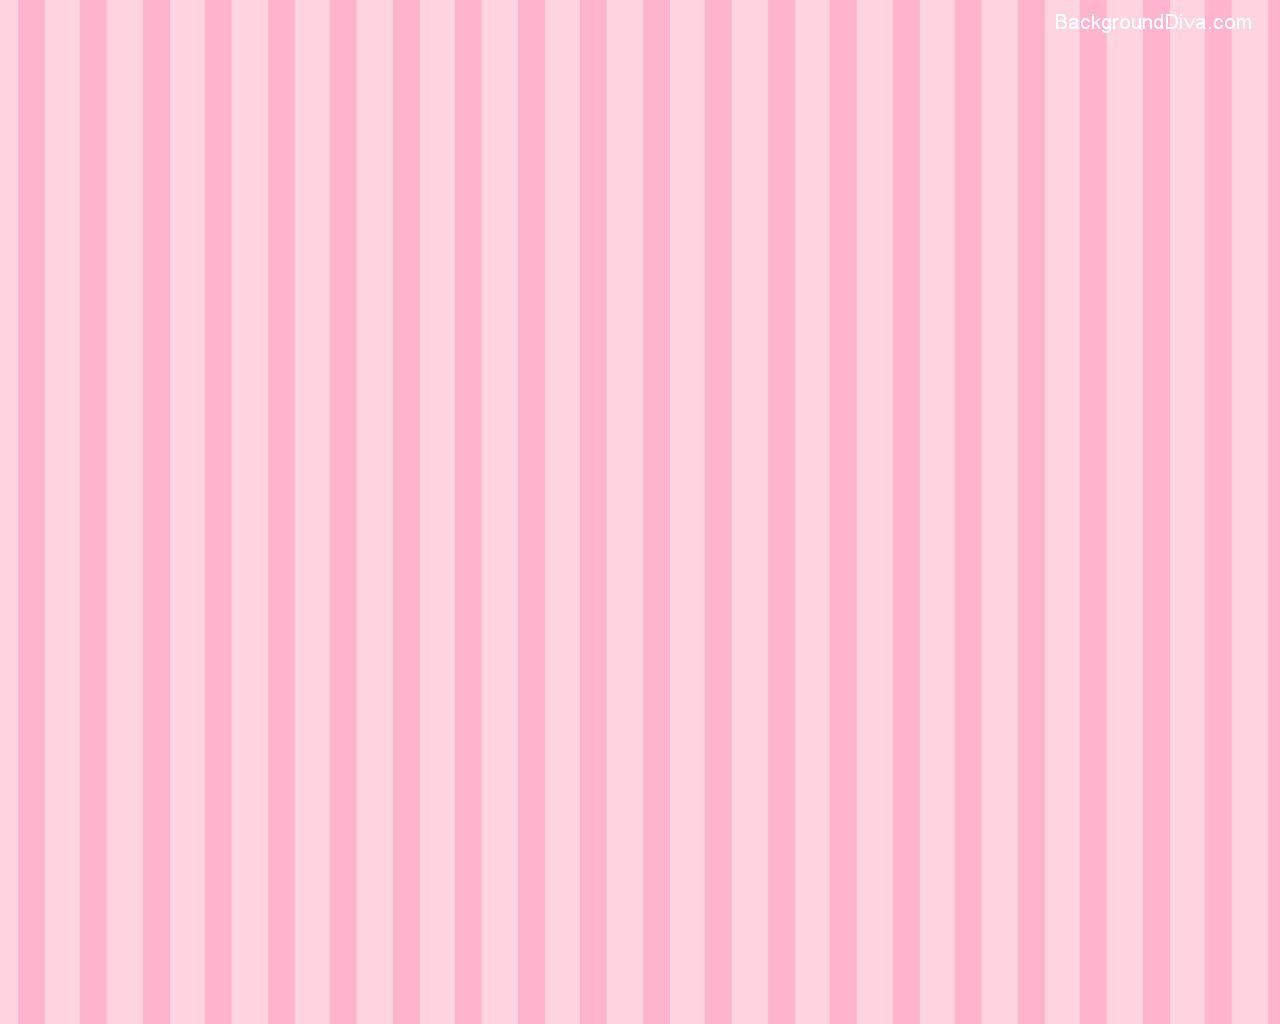 Pink And Blue Striped Wallpaper 2989 Wallpaper: Pin De Jona Talamantes' En SIMPLEMENTE YO